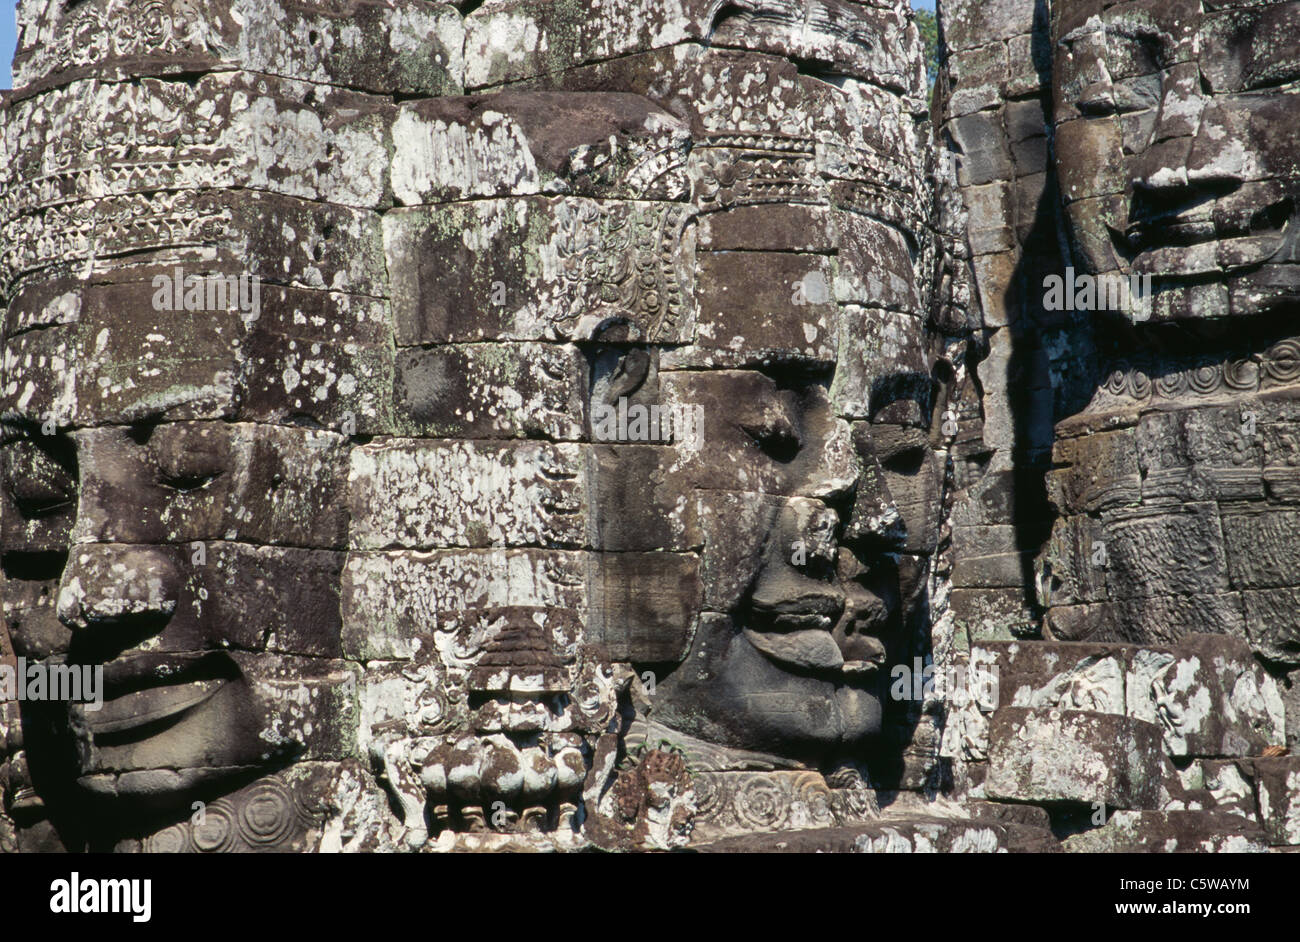 Cambodia, Siem Reap, Bayon Temple, Relief carvings - Stock Image